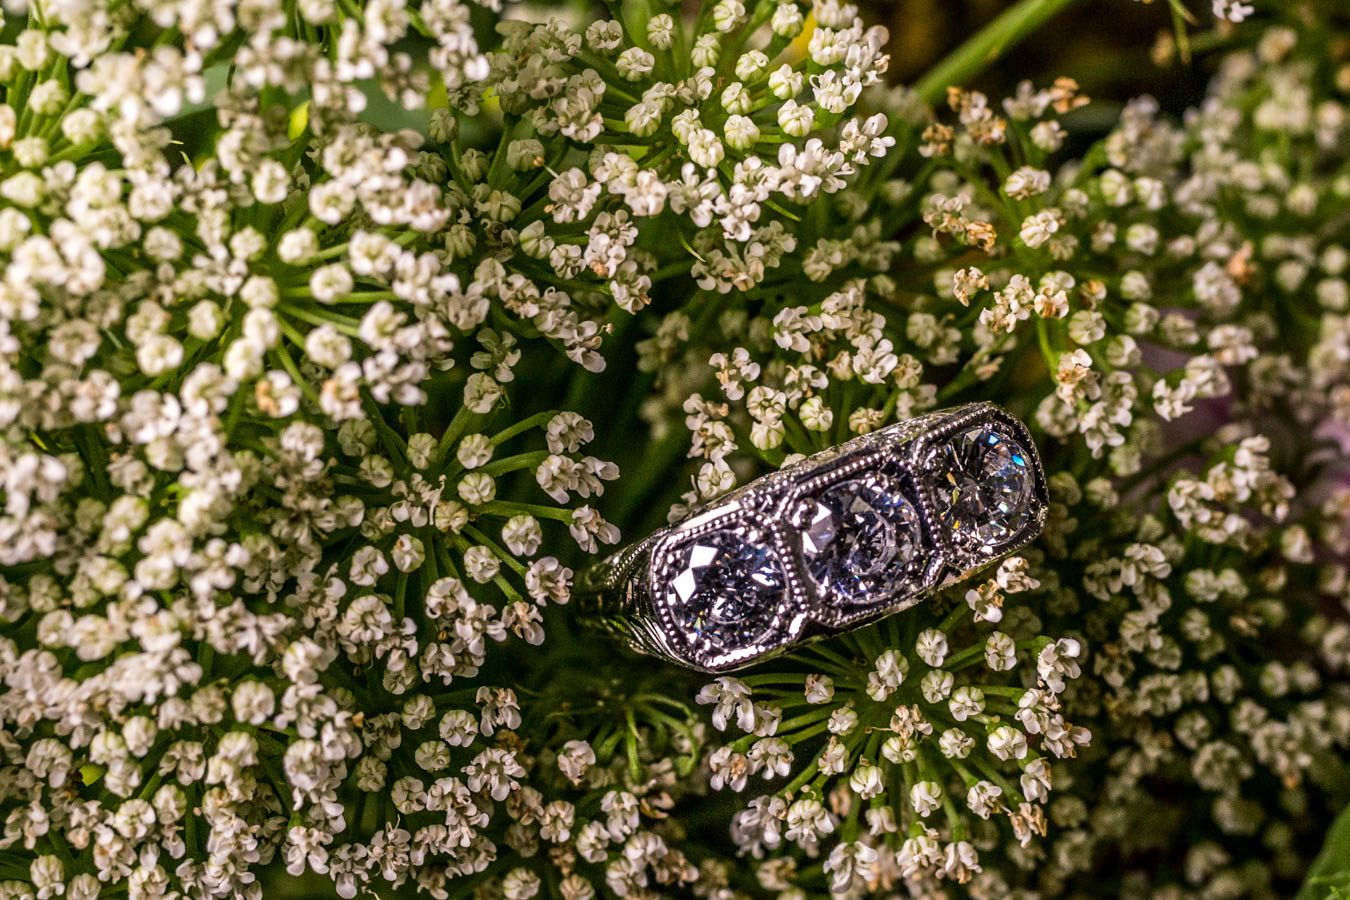 Simonetta Ring / Image: Catherine Viox{ }// Published: 10.8.19